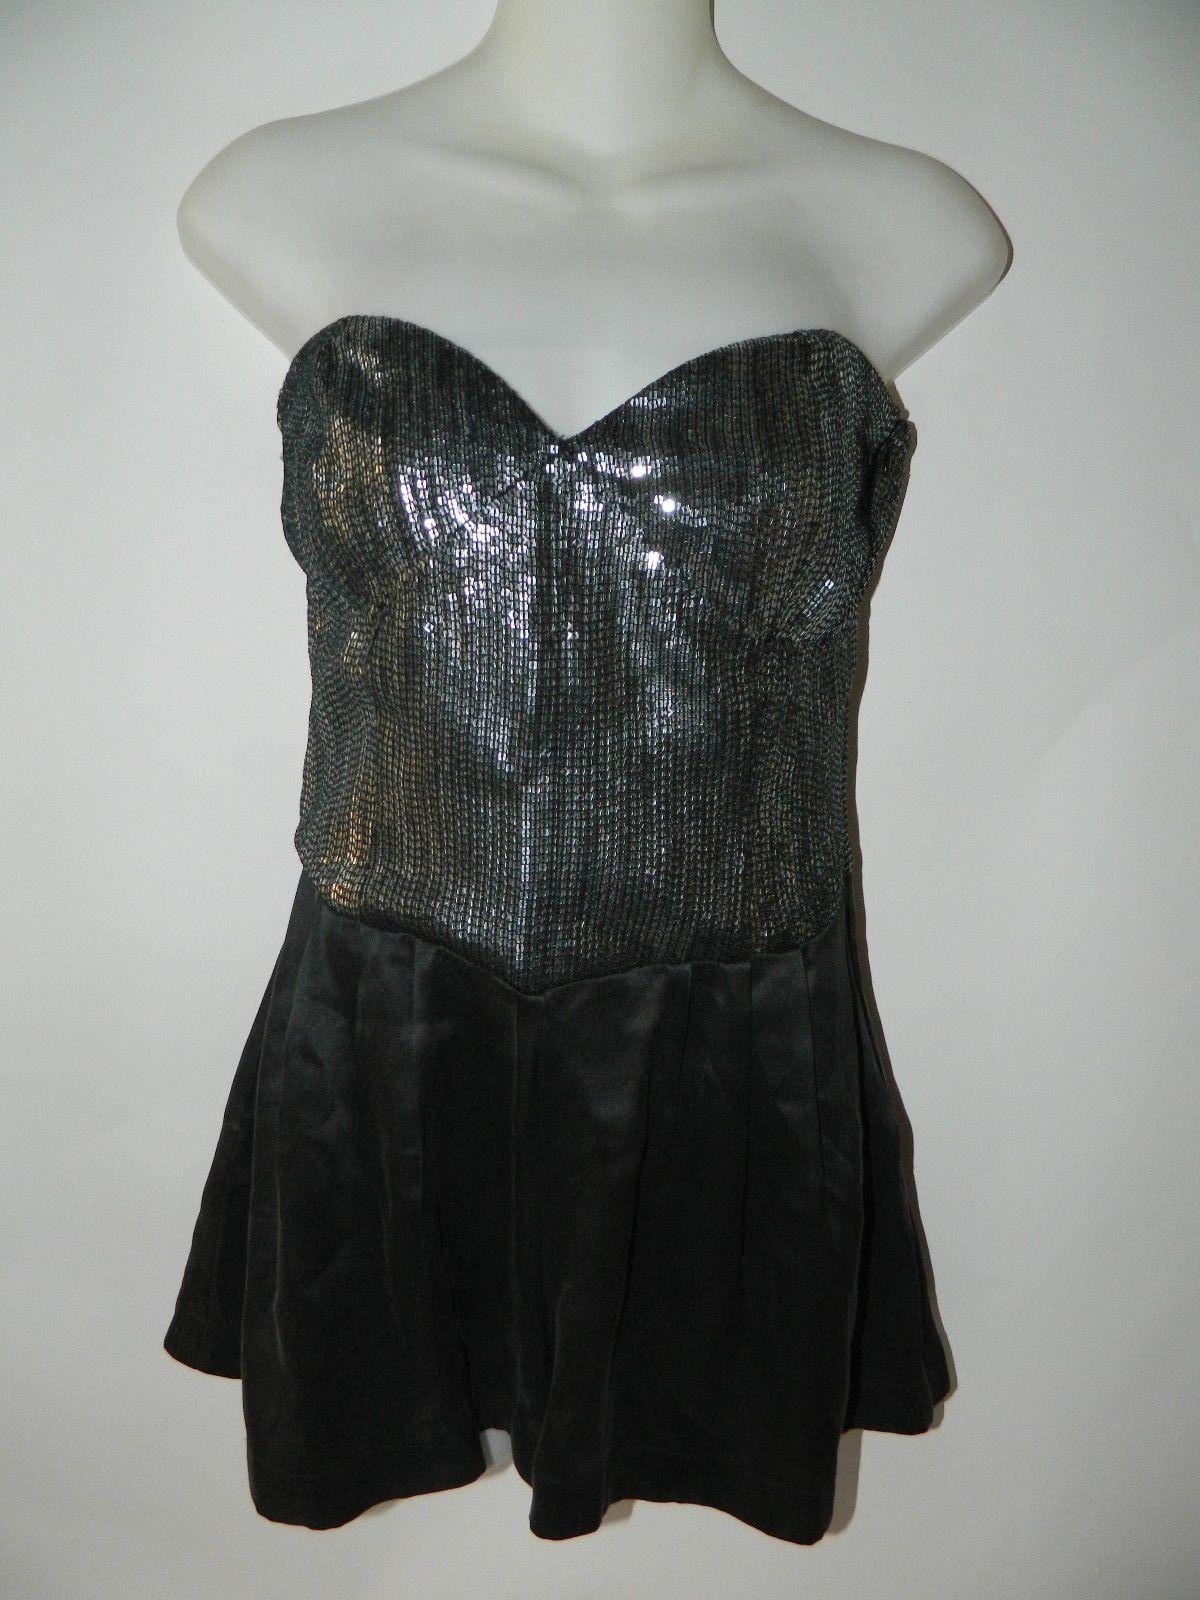 Dolce Vita Romper Black Strapless with Silver Sequins Romper Size S